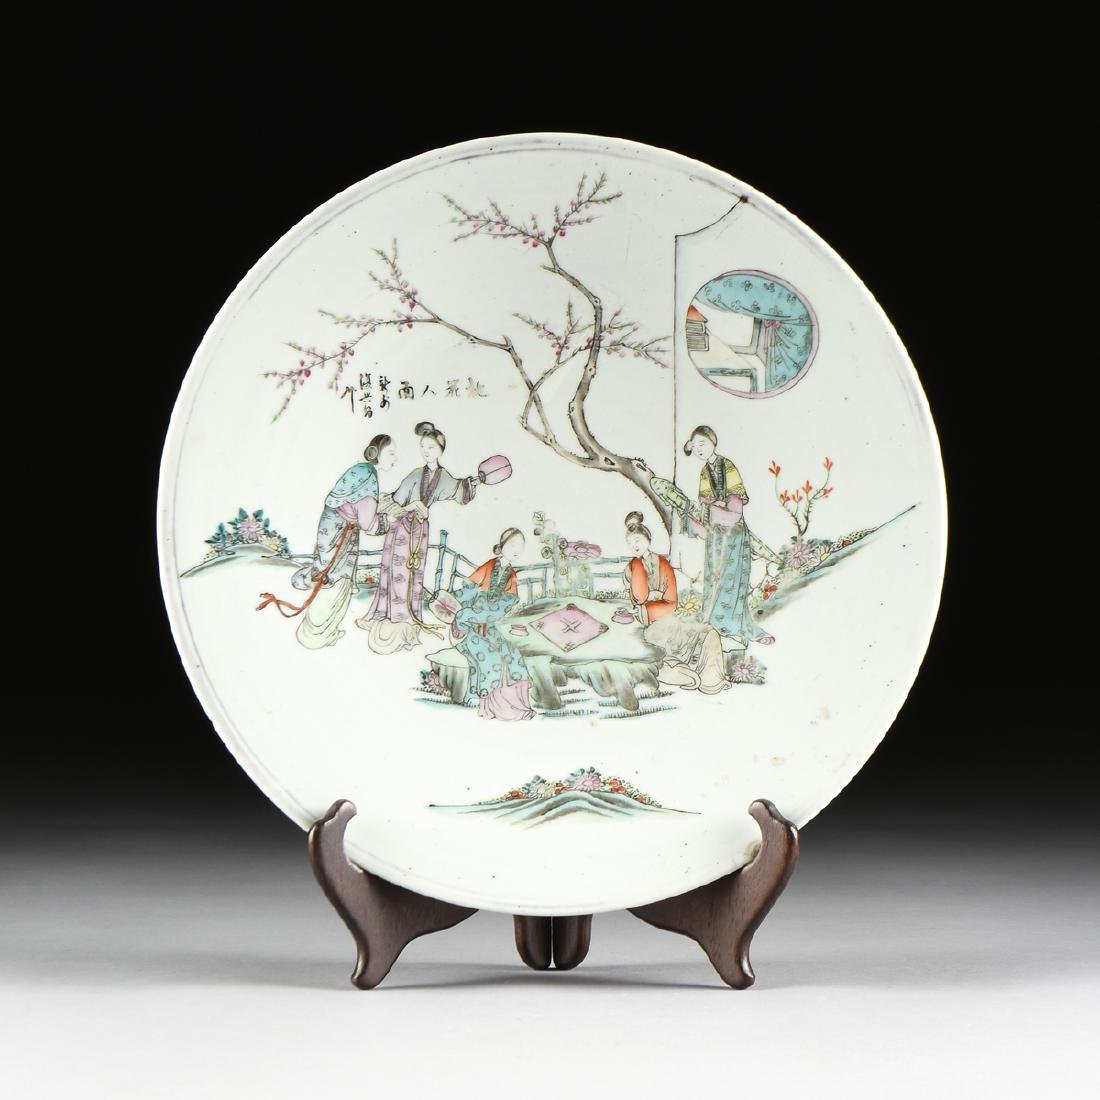 A CHINESE EXPORT FAMILLE ROSE PORCELAIN CHARGER,